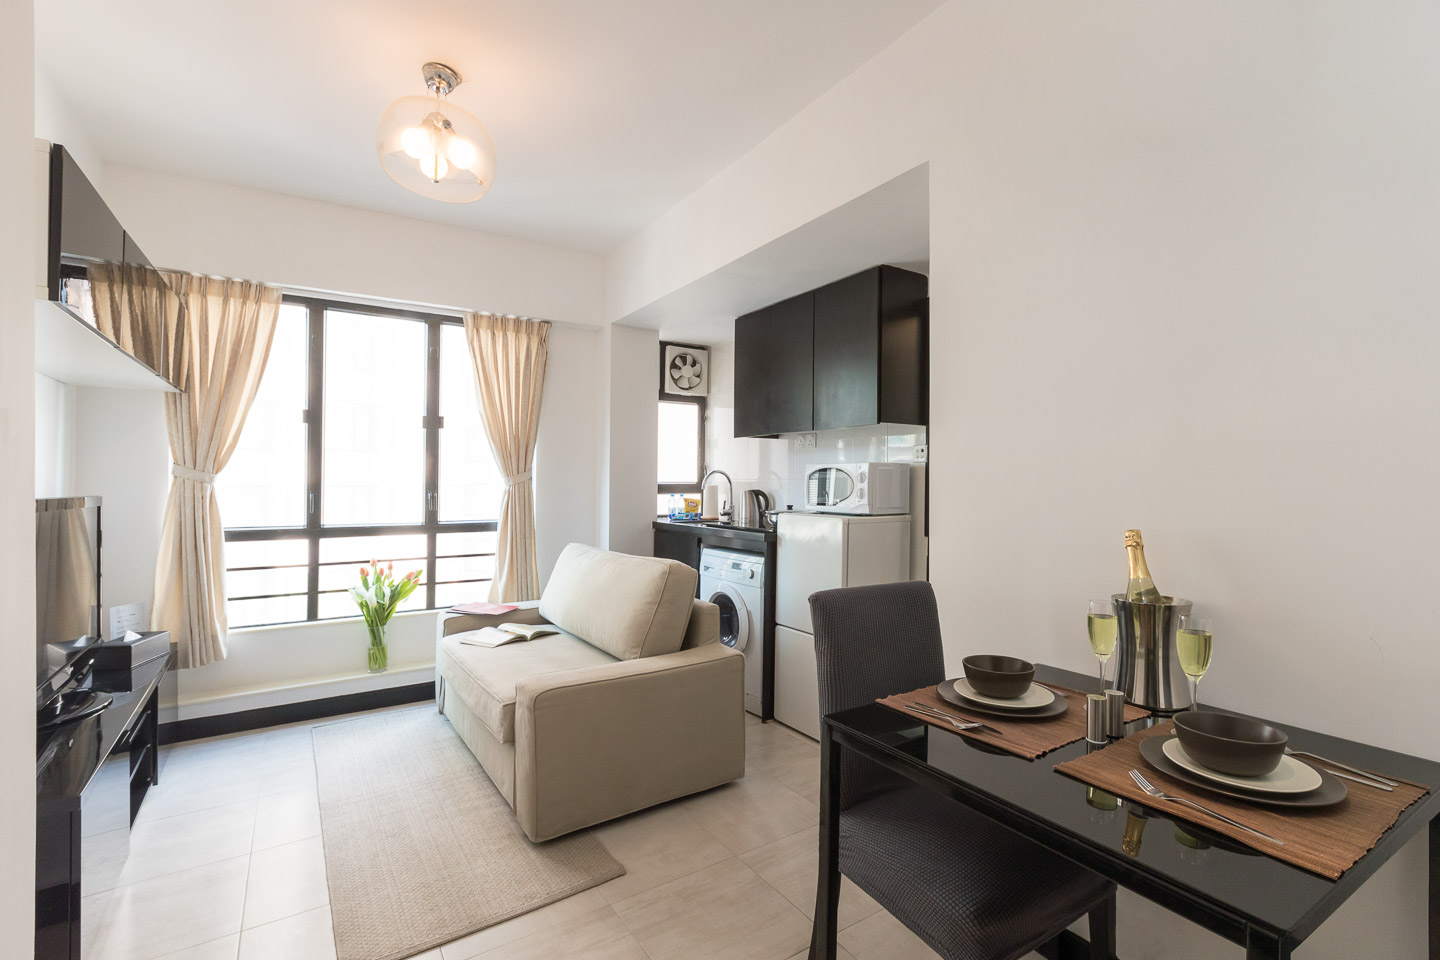 We Take Pride In Providing 5 Star Fully Serviced Designer Furnished And Equipped Apartments Across Hong Kong S Business Districts